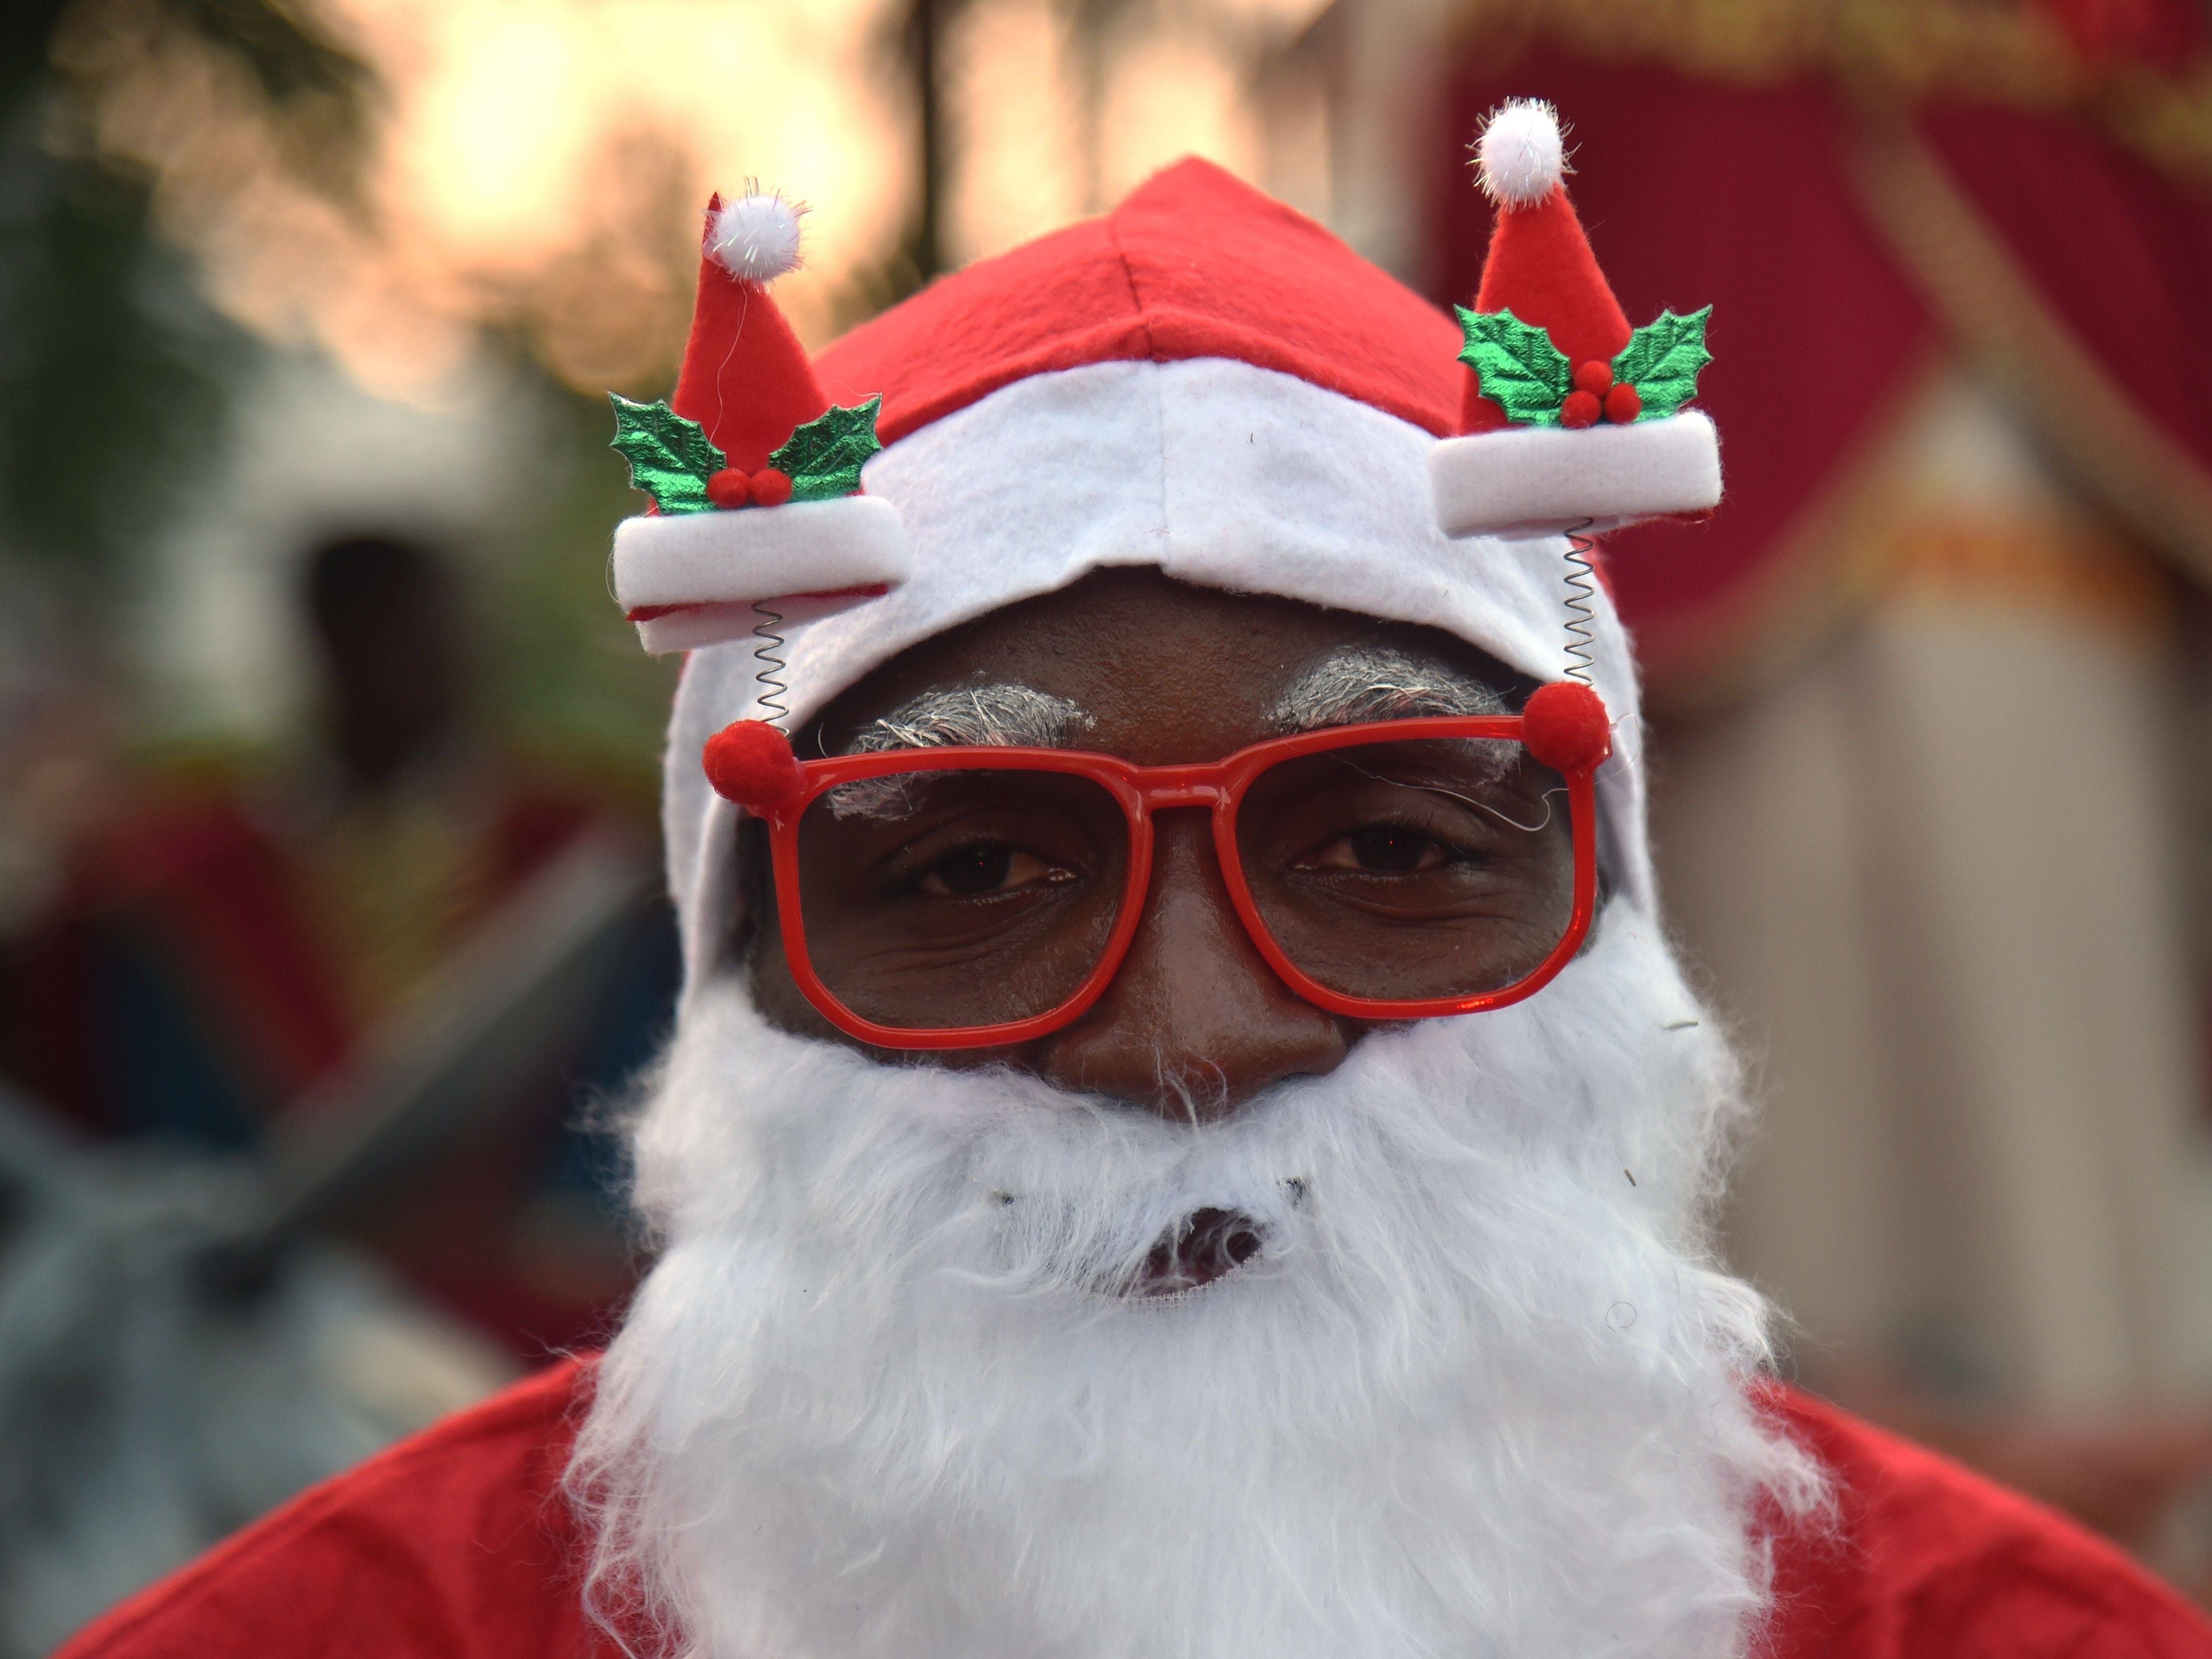 TOPSHOT - A Haitian man in a Santa Claus costume participates in a Christmas Parade (Parad Nwel in Haitian creole) on the streets of the commune of Petion Ville, in the Haitian capital Port-au-Prince, on December 23, 2018. (Photo by HECTOR RETAMAL / AFP)HECTOR RETAMAL/AFP/Getty Images ORG XMIT: 2246 ORIG FILE ID: AFP_1BT26Y